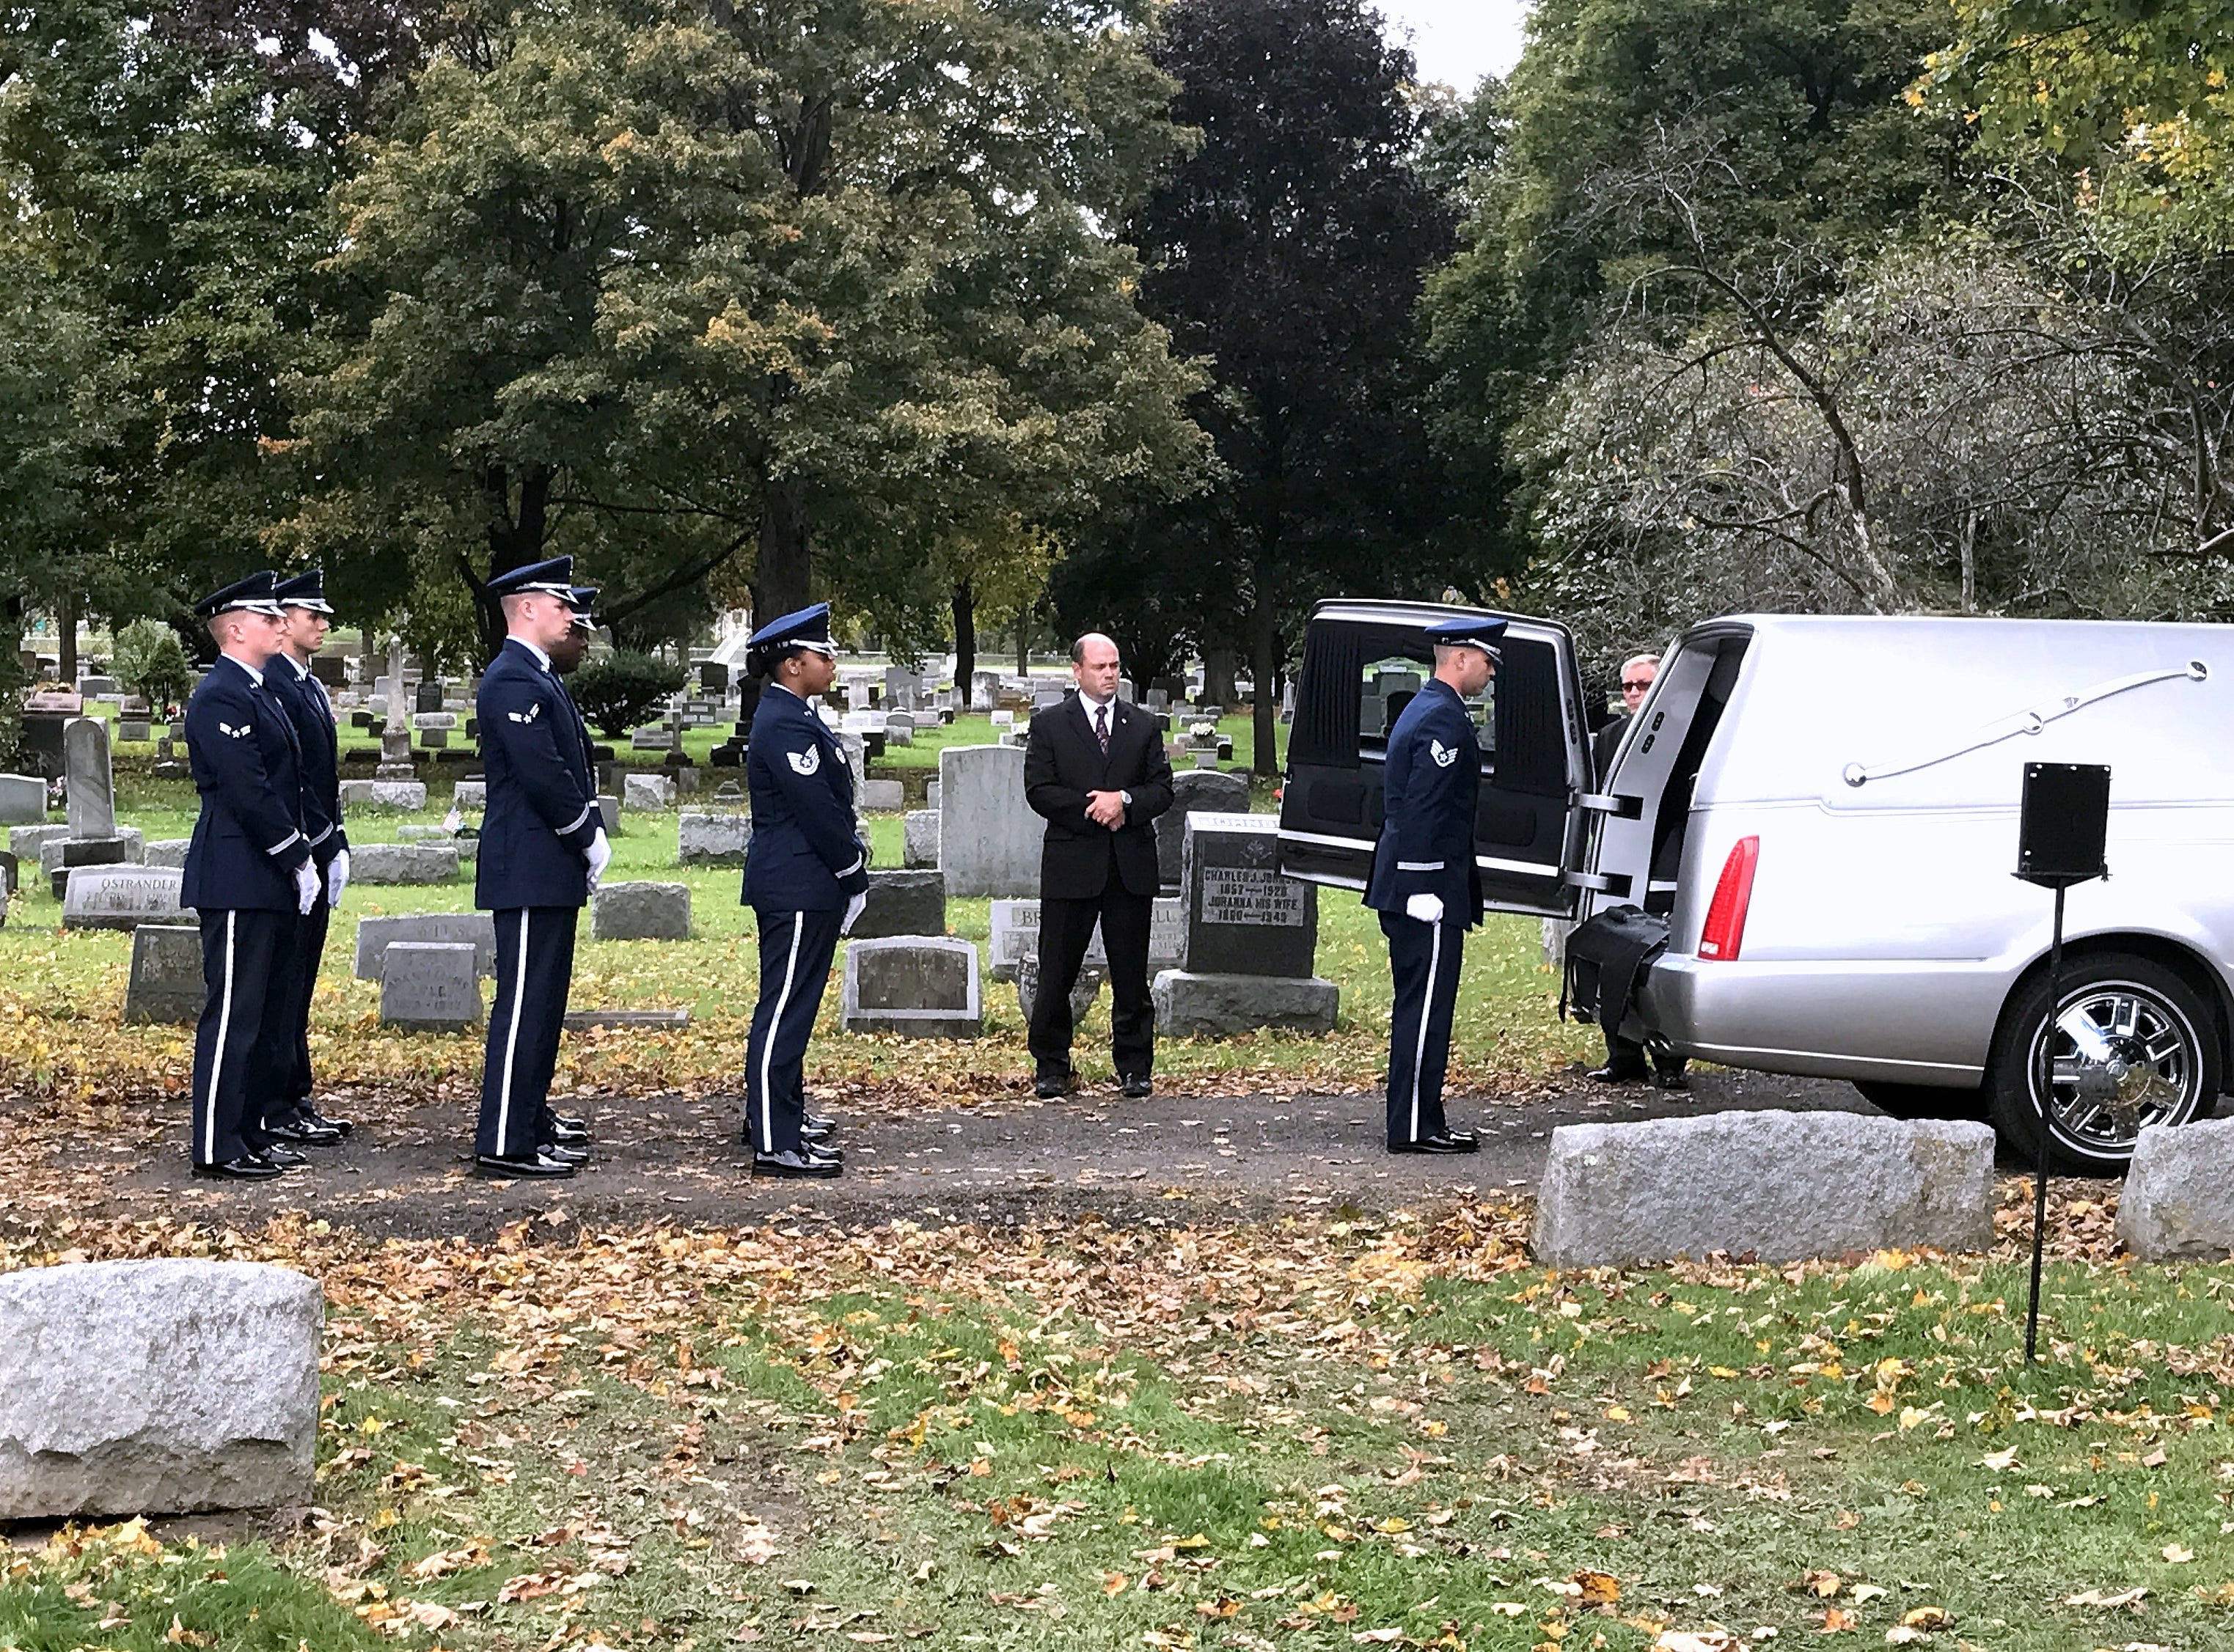 Military pallbearers prepare to remove the body of U.S. Air Force Staff Sgt. Eugene Costley from a hearse Friday at Maple Grove Cemetery in Horseheads.